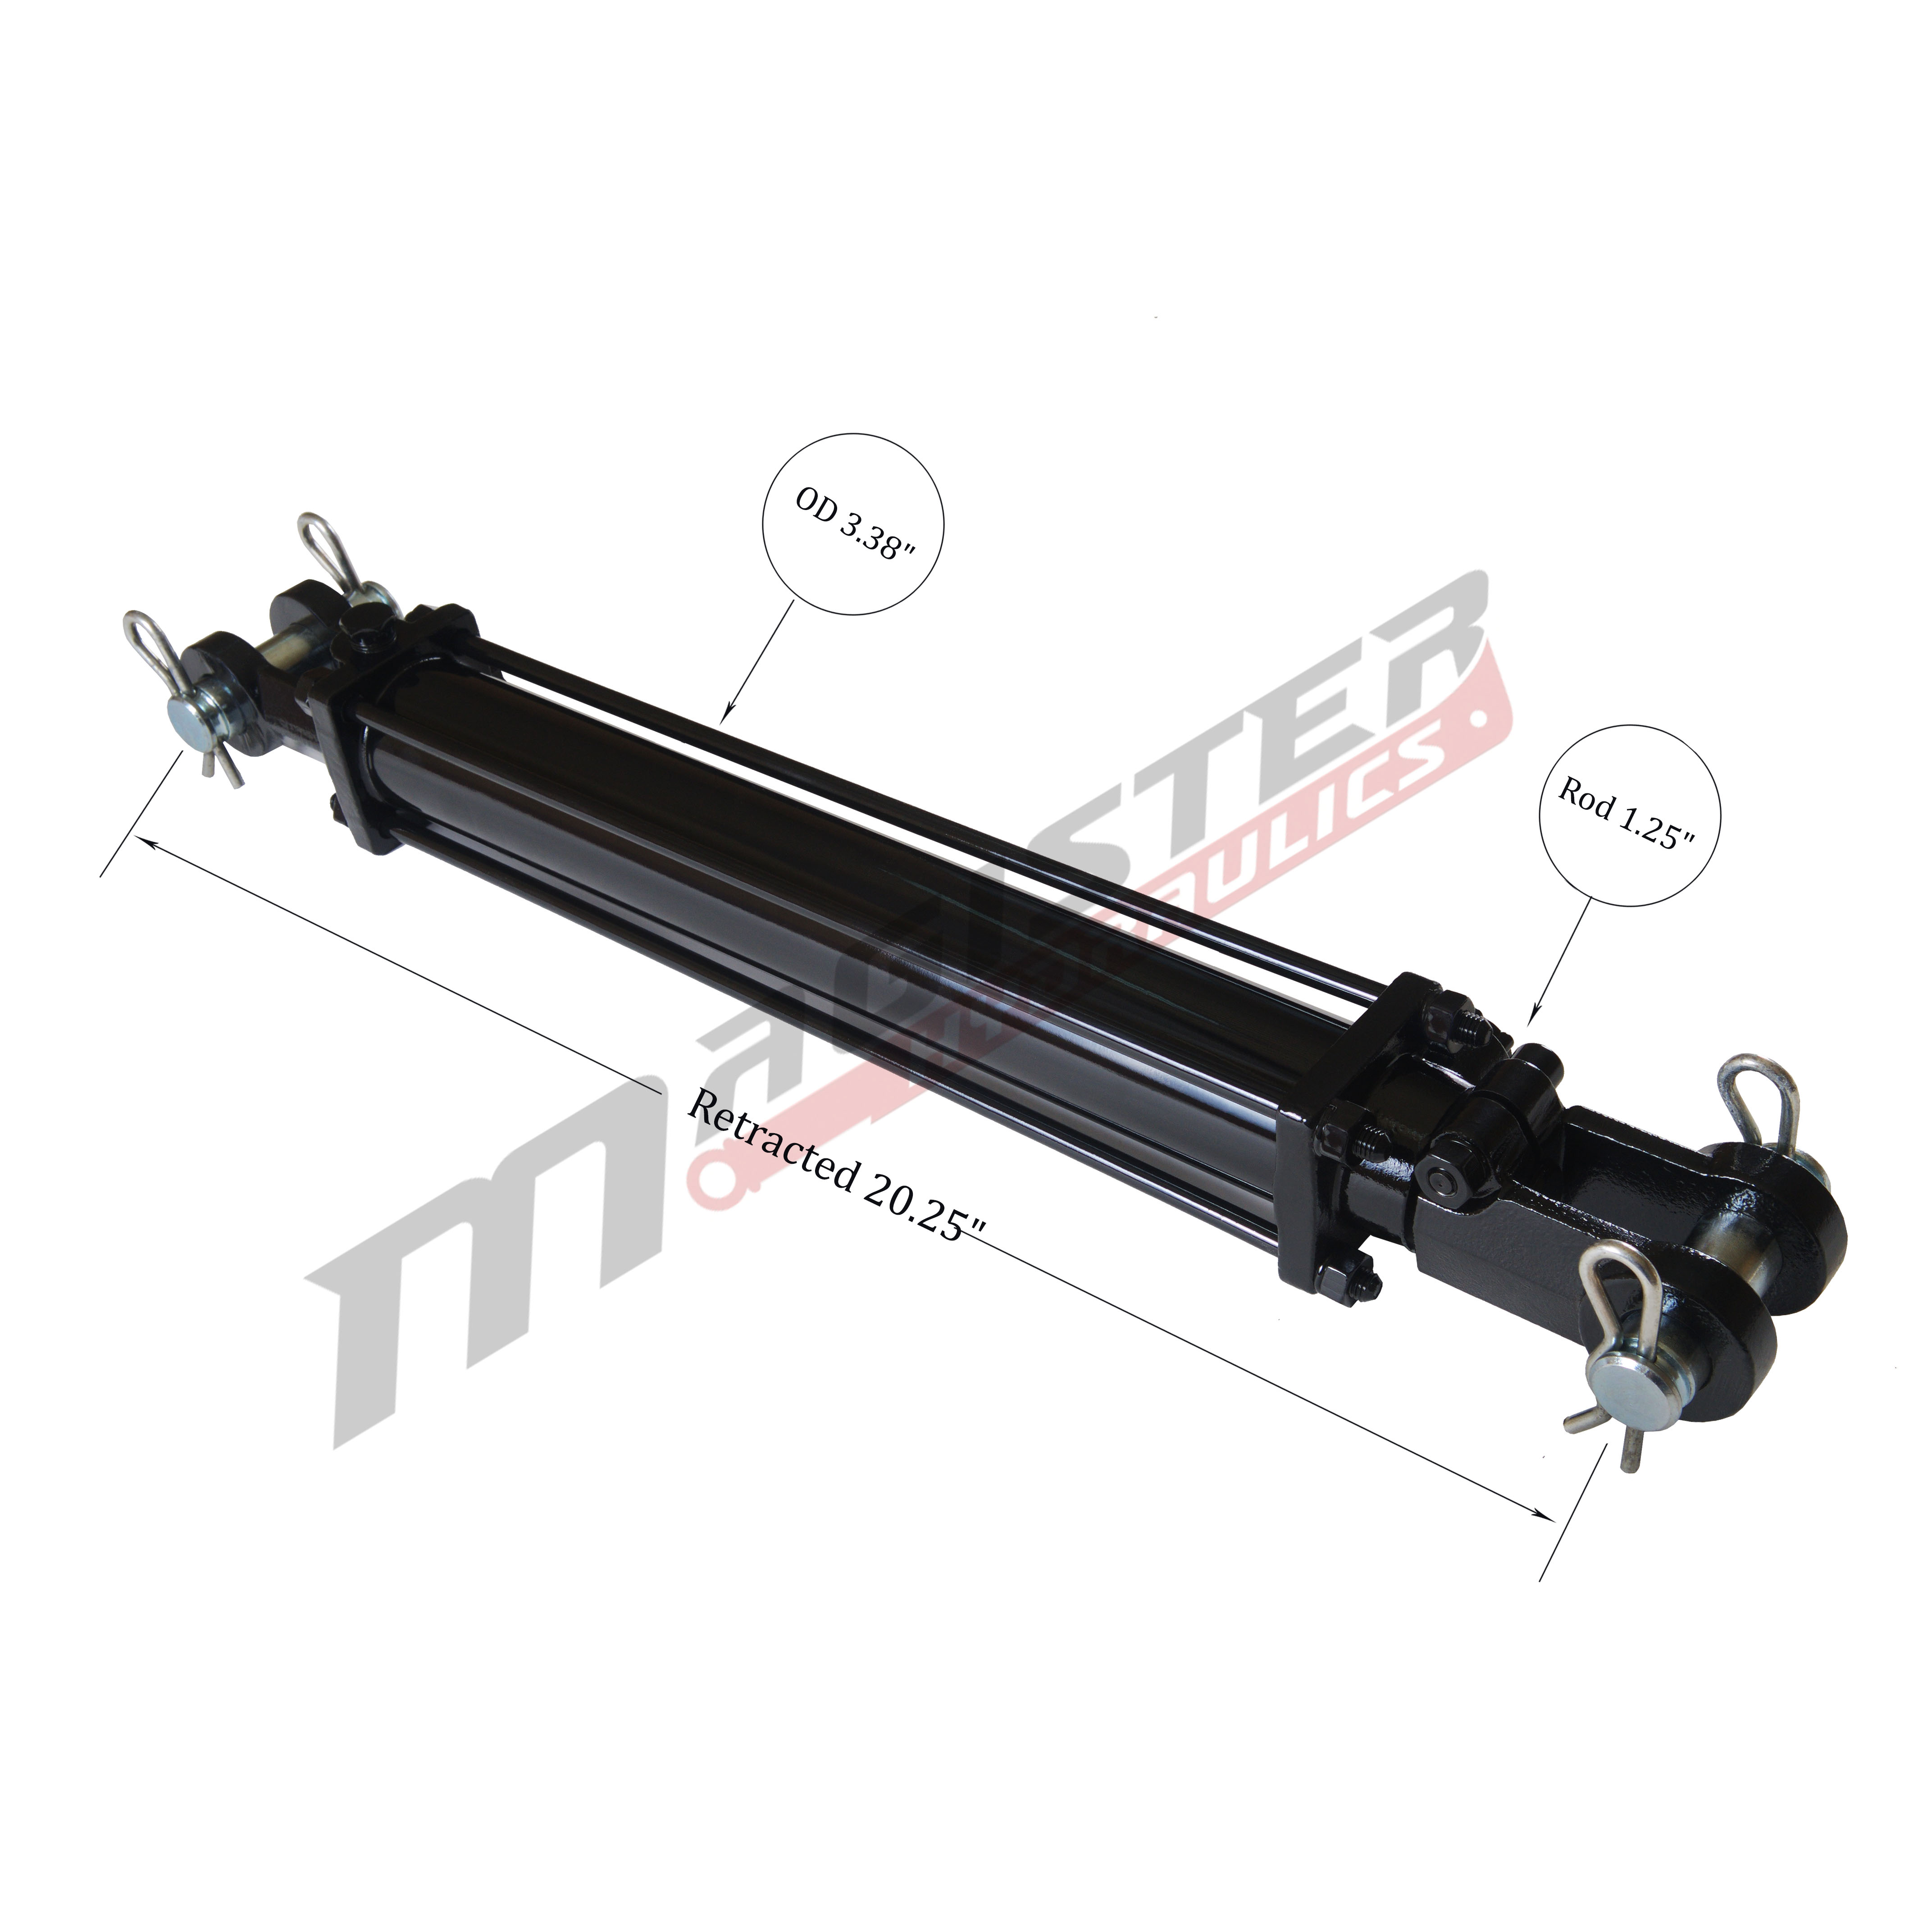 3 bore x 8 ASAE stroke hydraulic cylinder, tie rod double acting cylinder   Magister Hydraulics